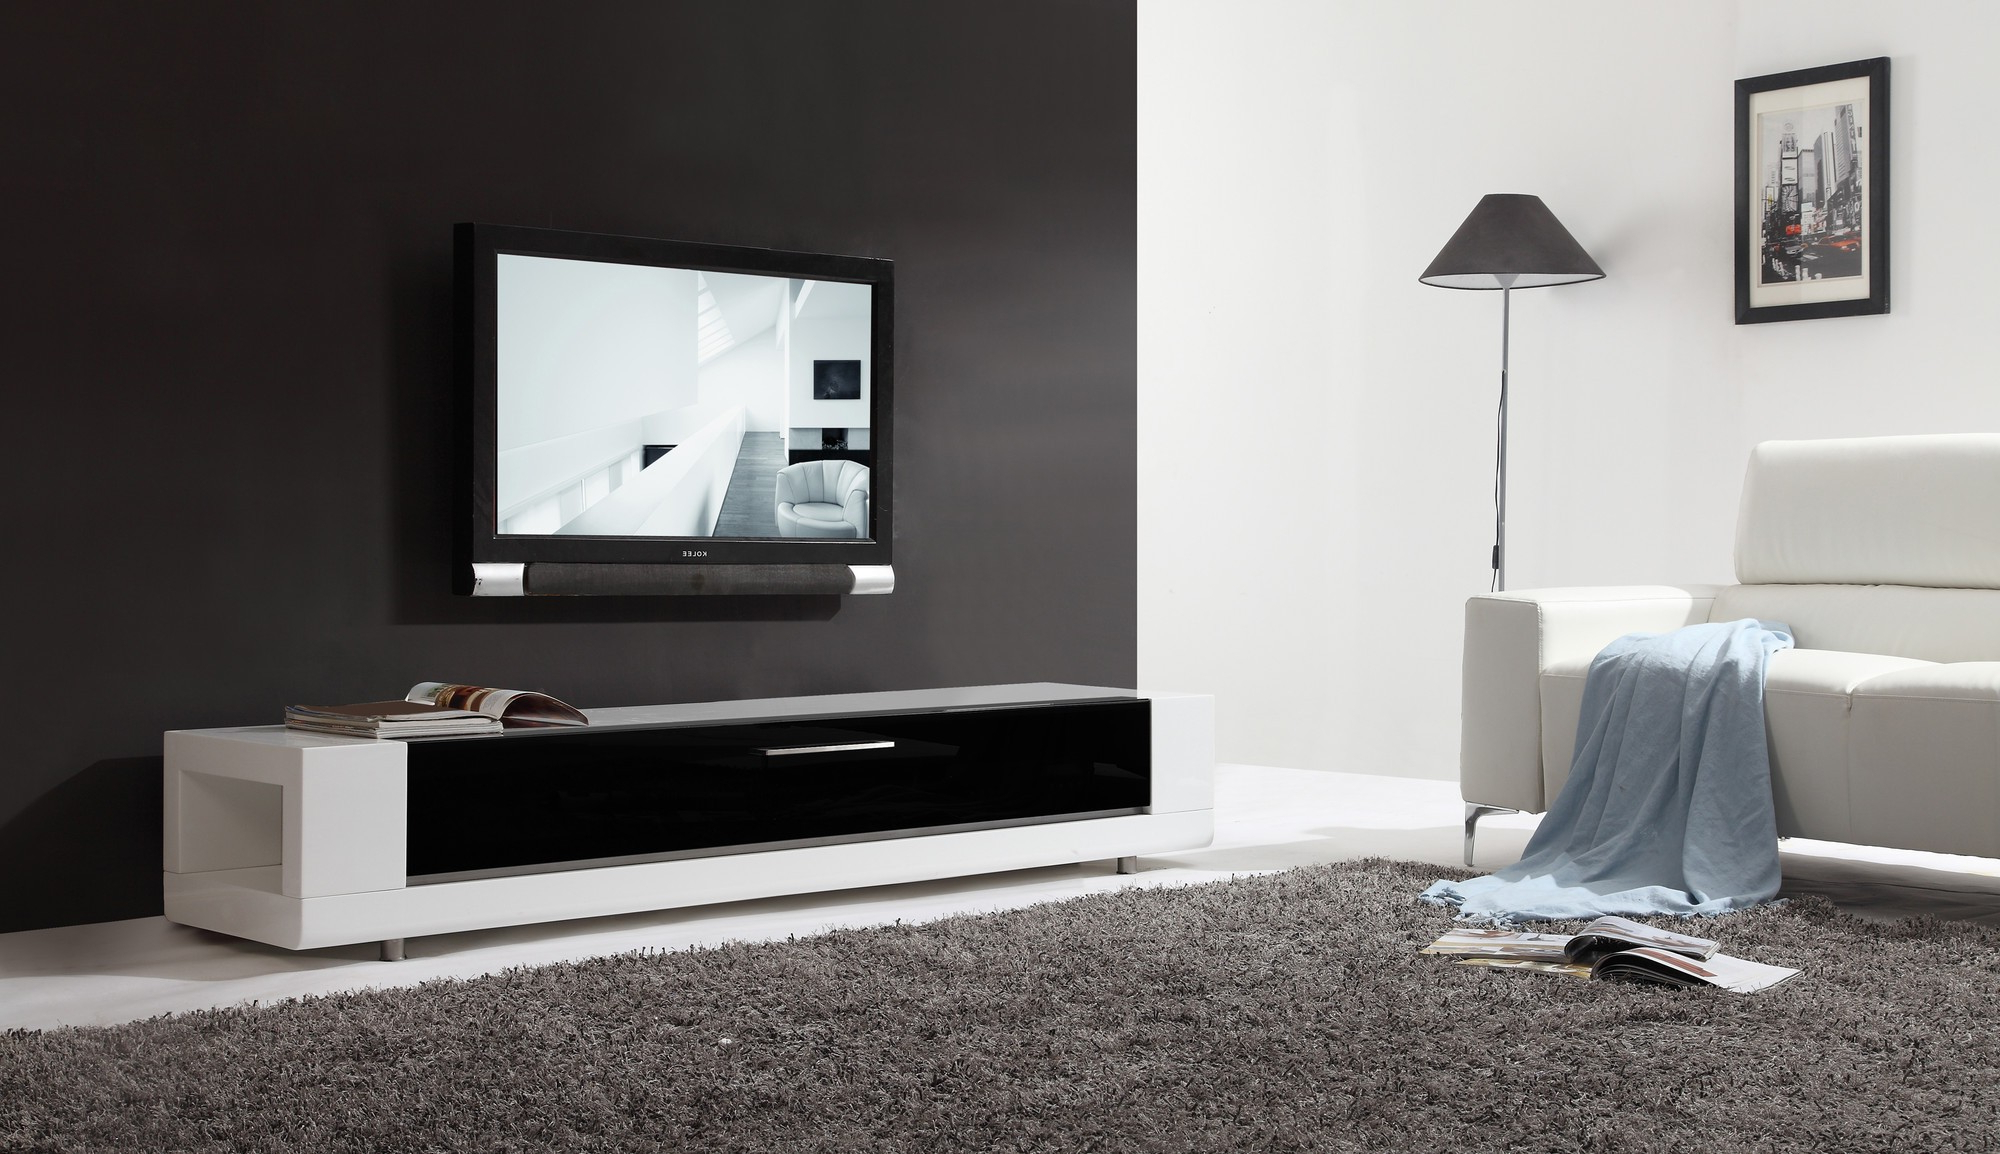 B Modern Tv Stands With Fashionable B Modern Editor Remix Tv Stand Modern Furnishings (View 7 of 20)